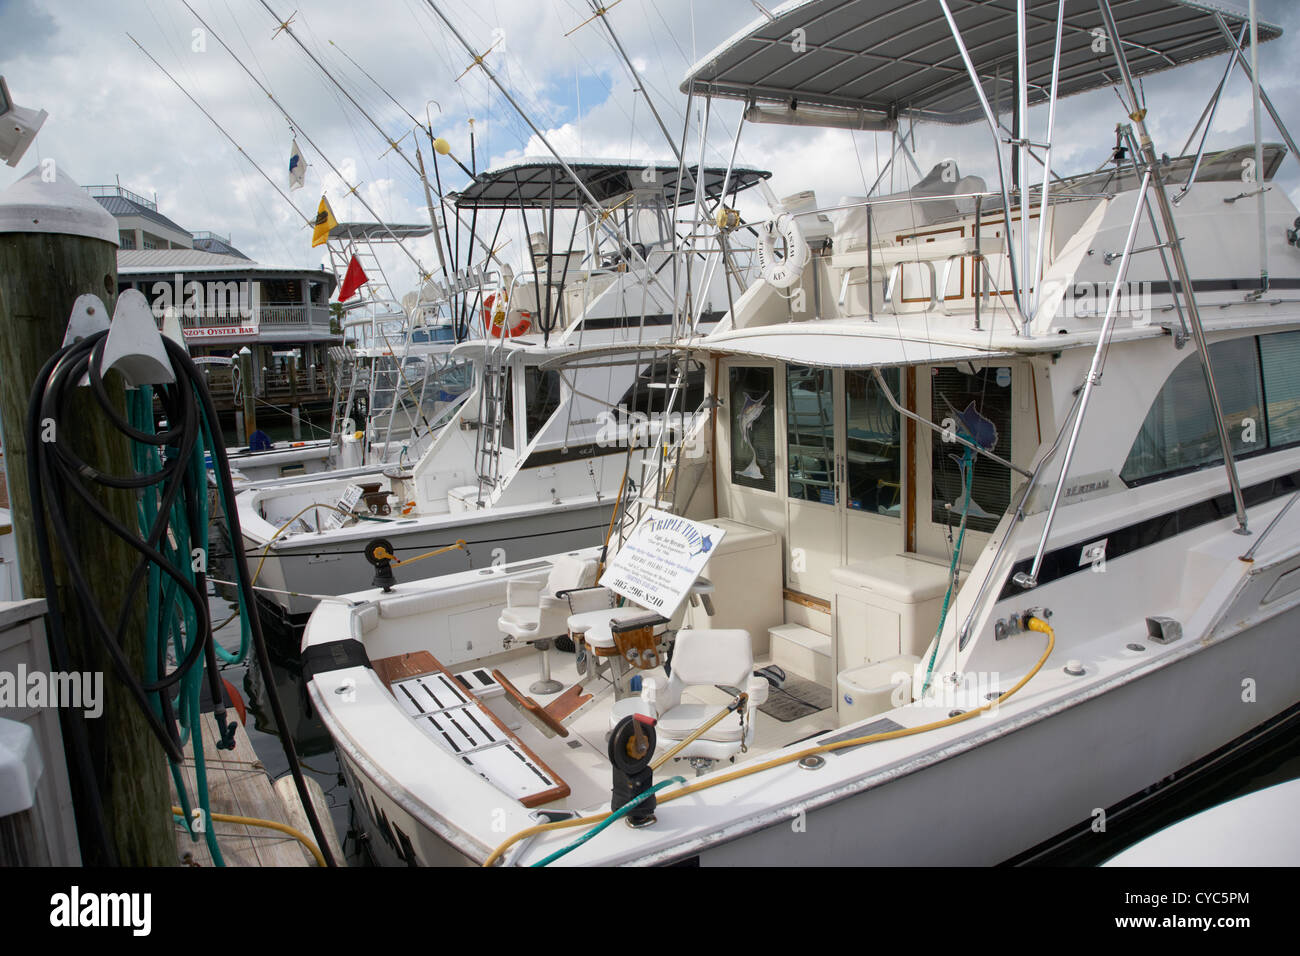 charter fishing boats in the old seaport of key west florida usa - Stock Image